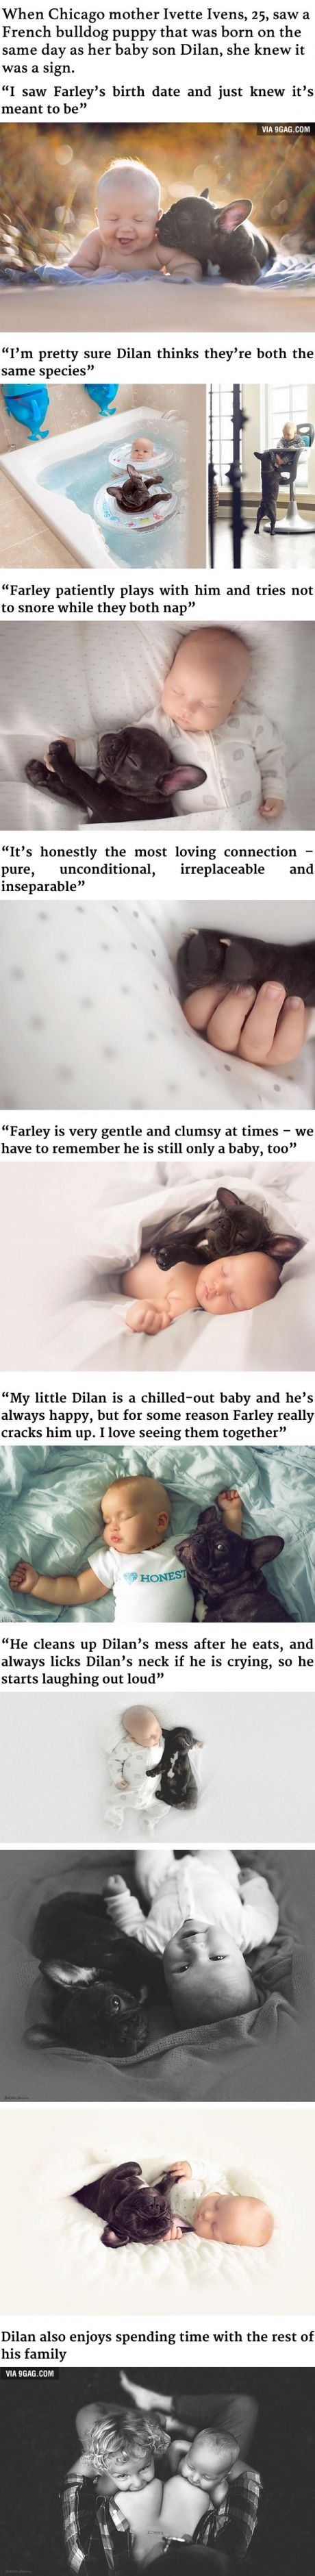 best naps images on pinterest cats ways to say i love you